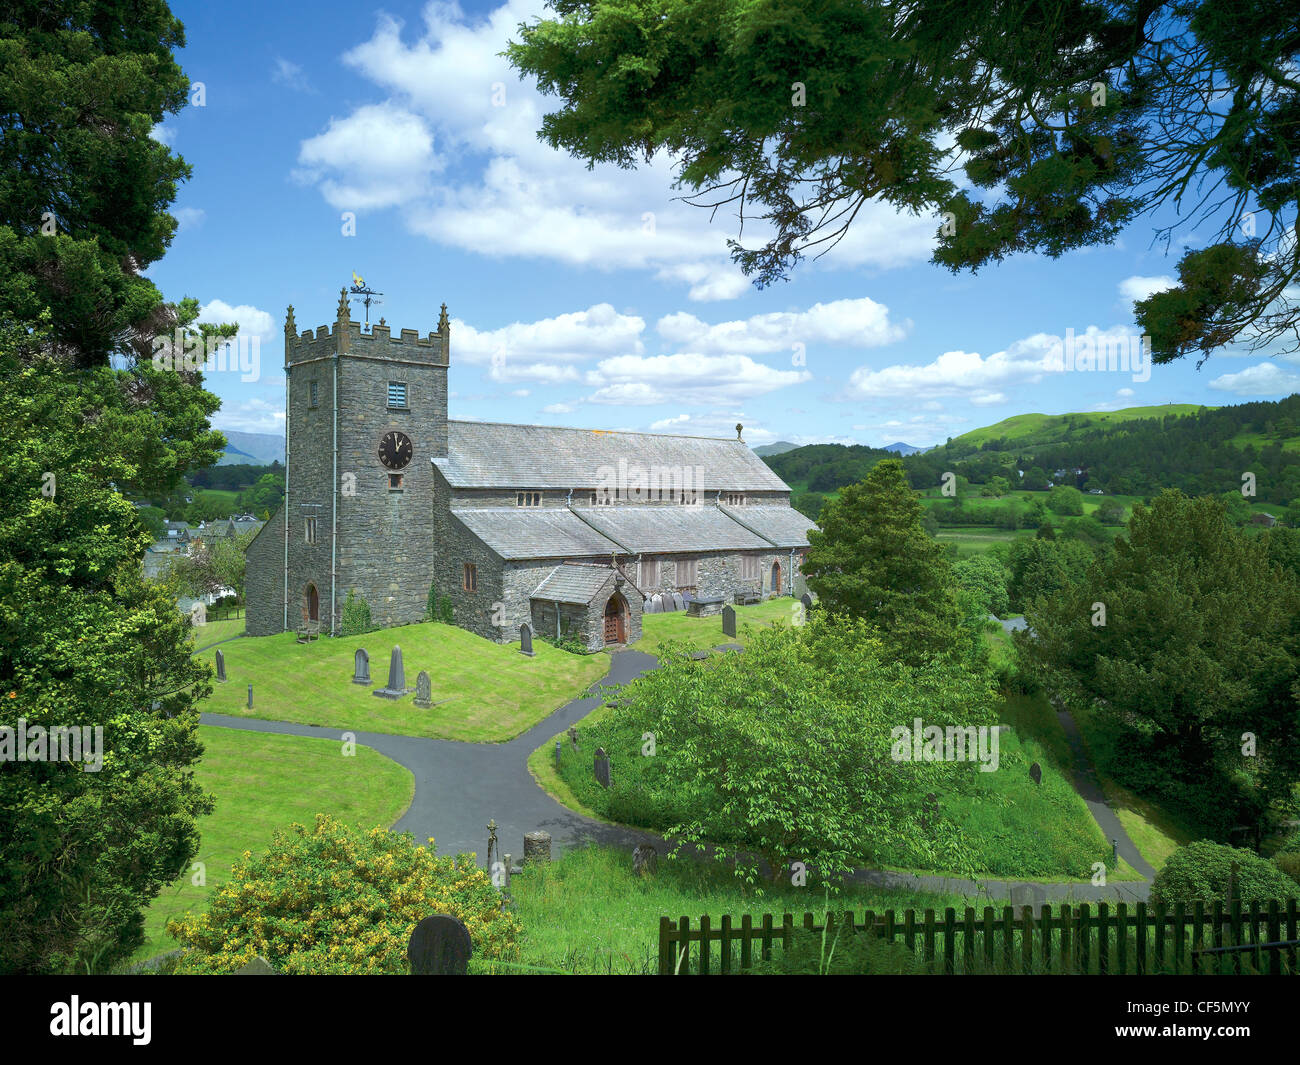 The 15th century parish church of St Michael and All Angels in Hawkshead. William Wordsworth, who went to school - Stock Image